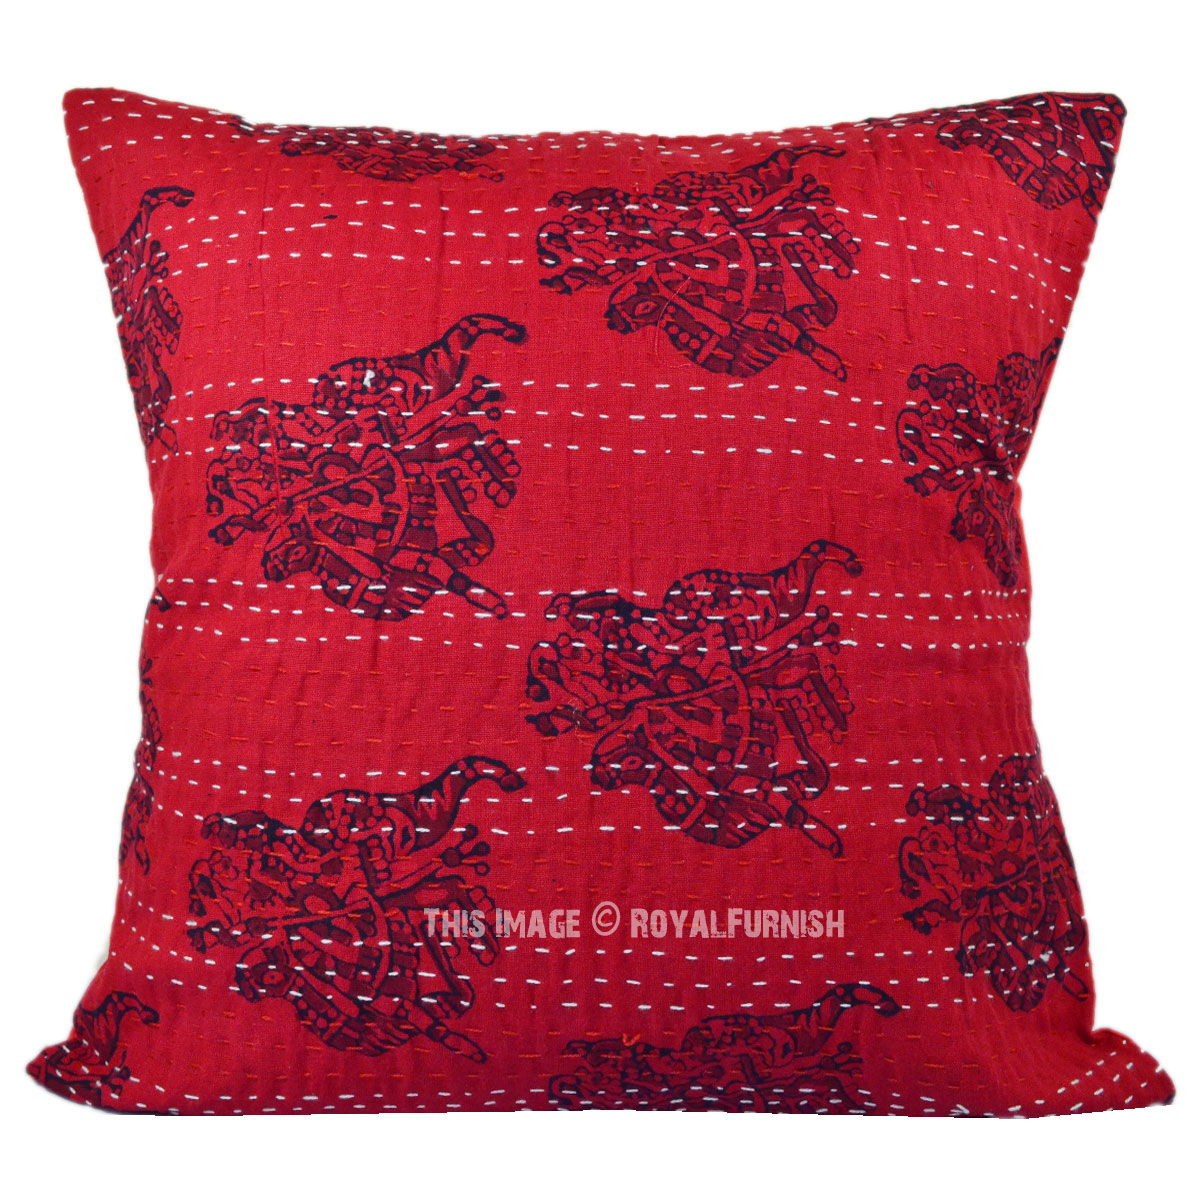 Handmade Decorative Throw Pillows : Decorative Handmade Maroon Camel Printed Kantha Throw Pillow Case - RoyalFurnish.com